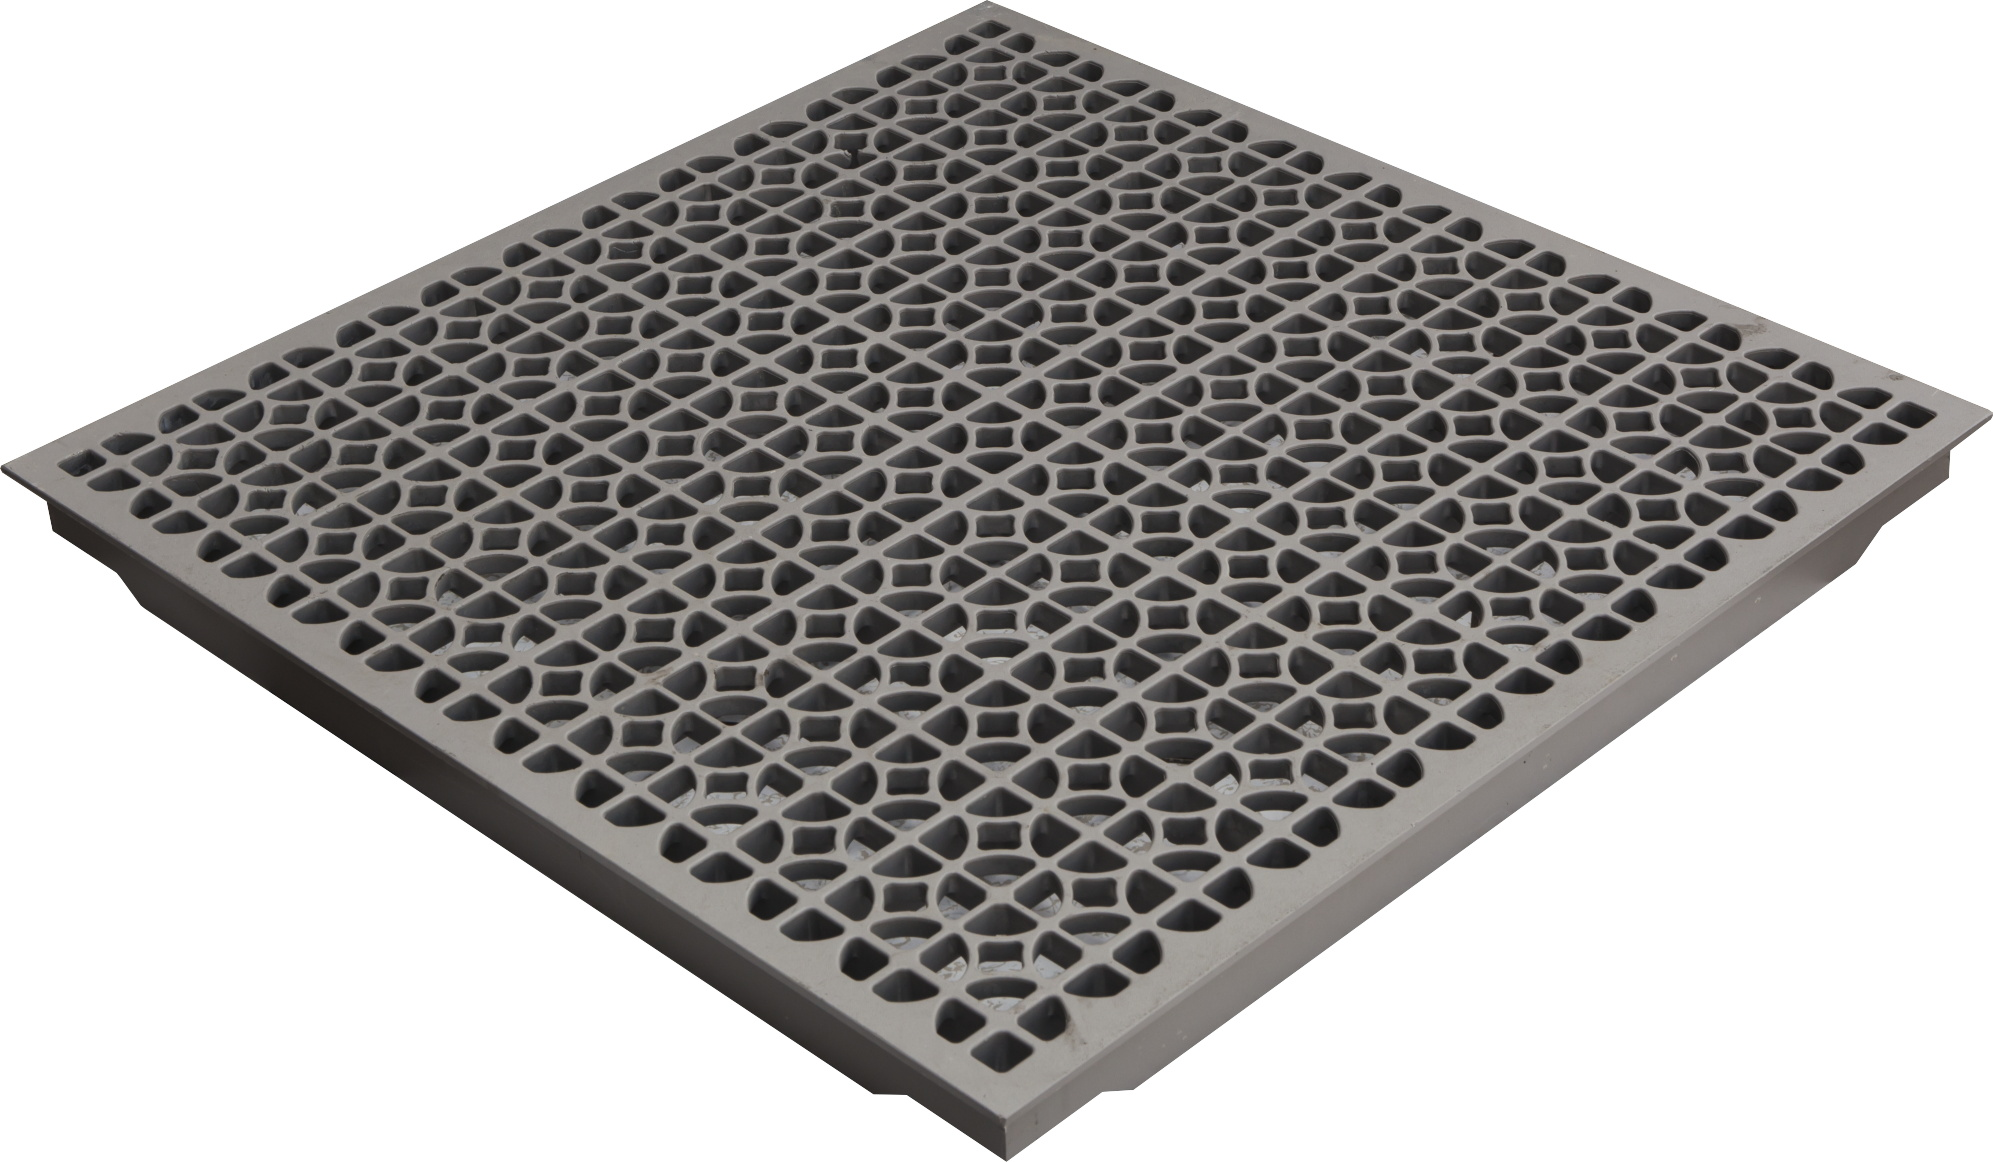 Aluminum triad floors perforated raised floor panels featuring a durable 55 open area perforated design our cast aluminum panel is our most economical option it is available in our crystal white and grey dailygadgetfo Choice Image